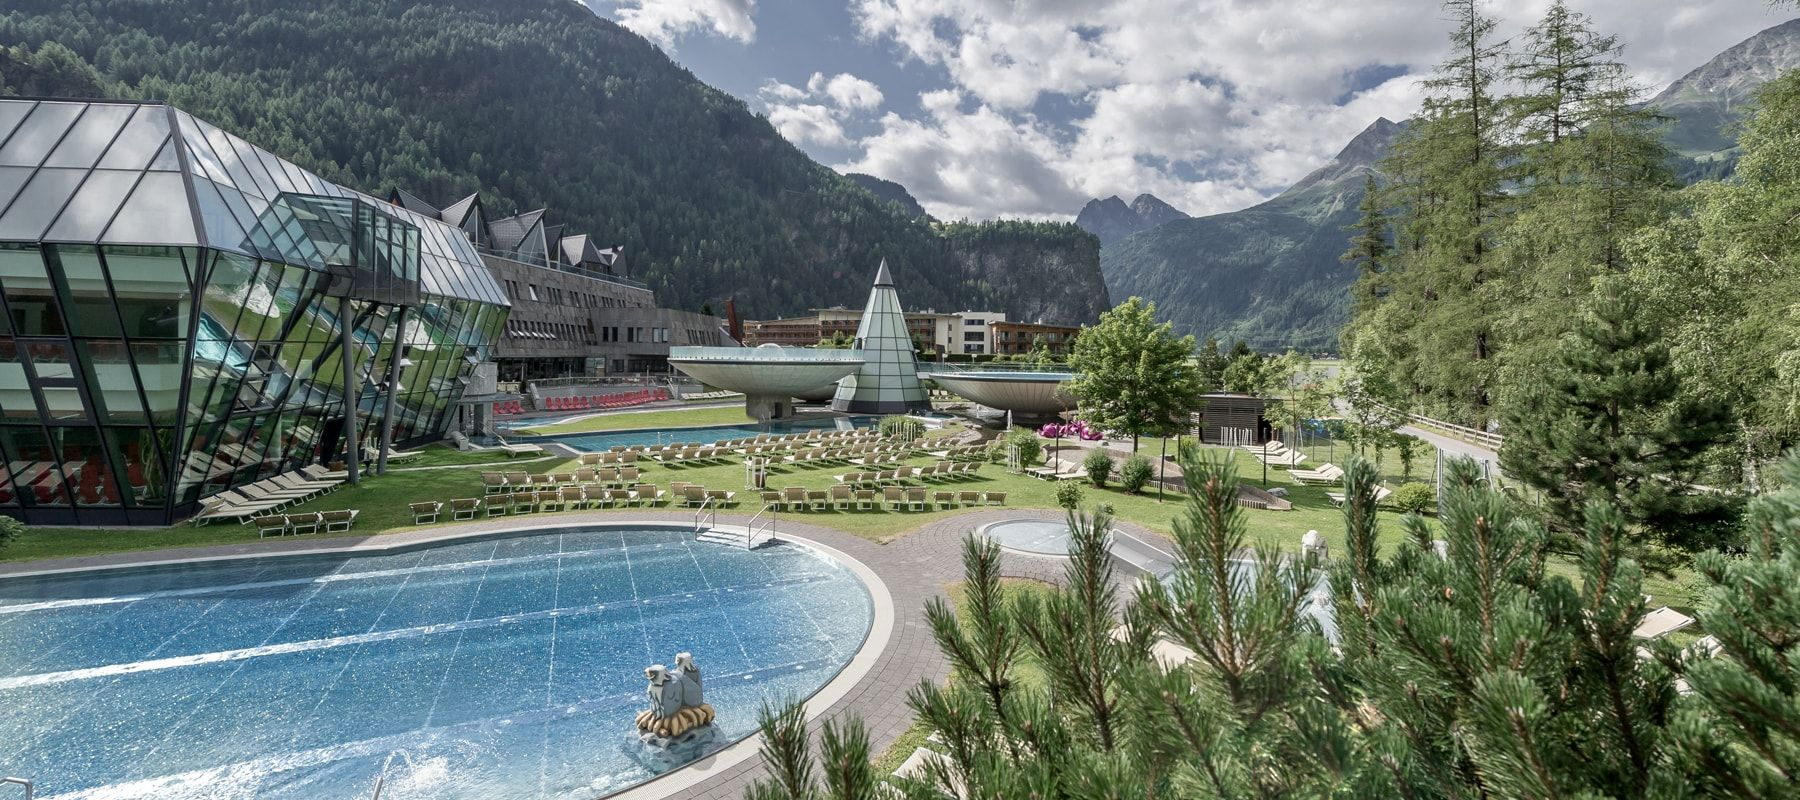 Wellnessurlaub-Therme-Aqua-Dome